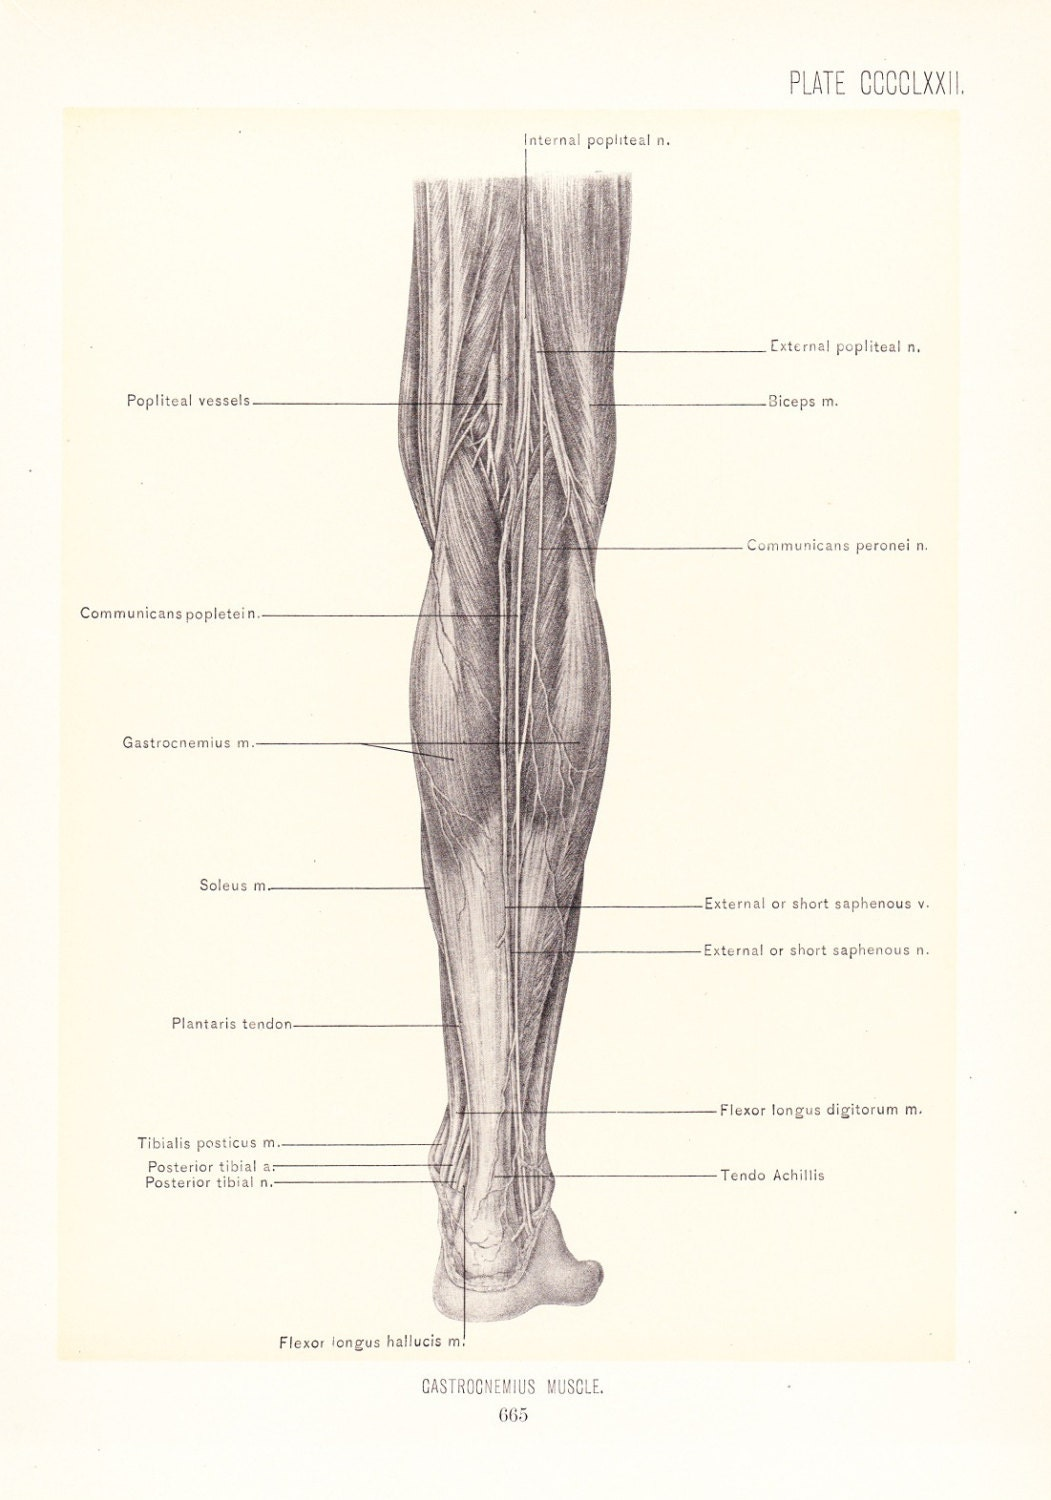 Anatomy 1899 Human Anatomy Print Gastrocnemius Muscle Of Leg Etsy